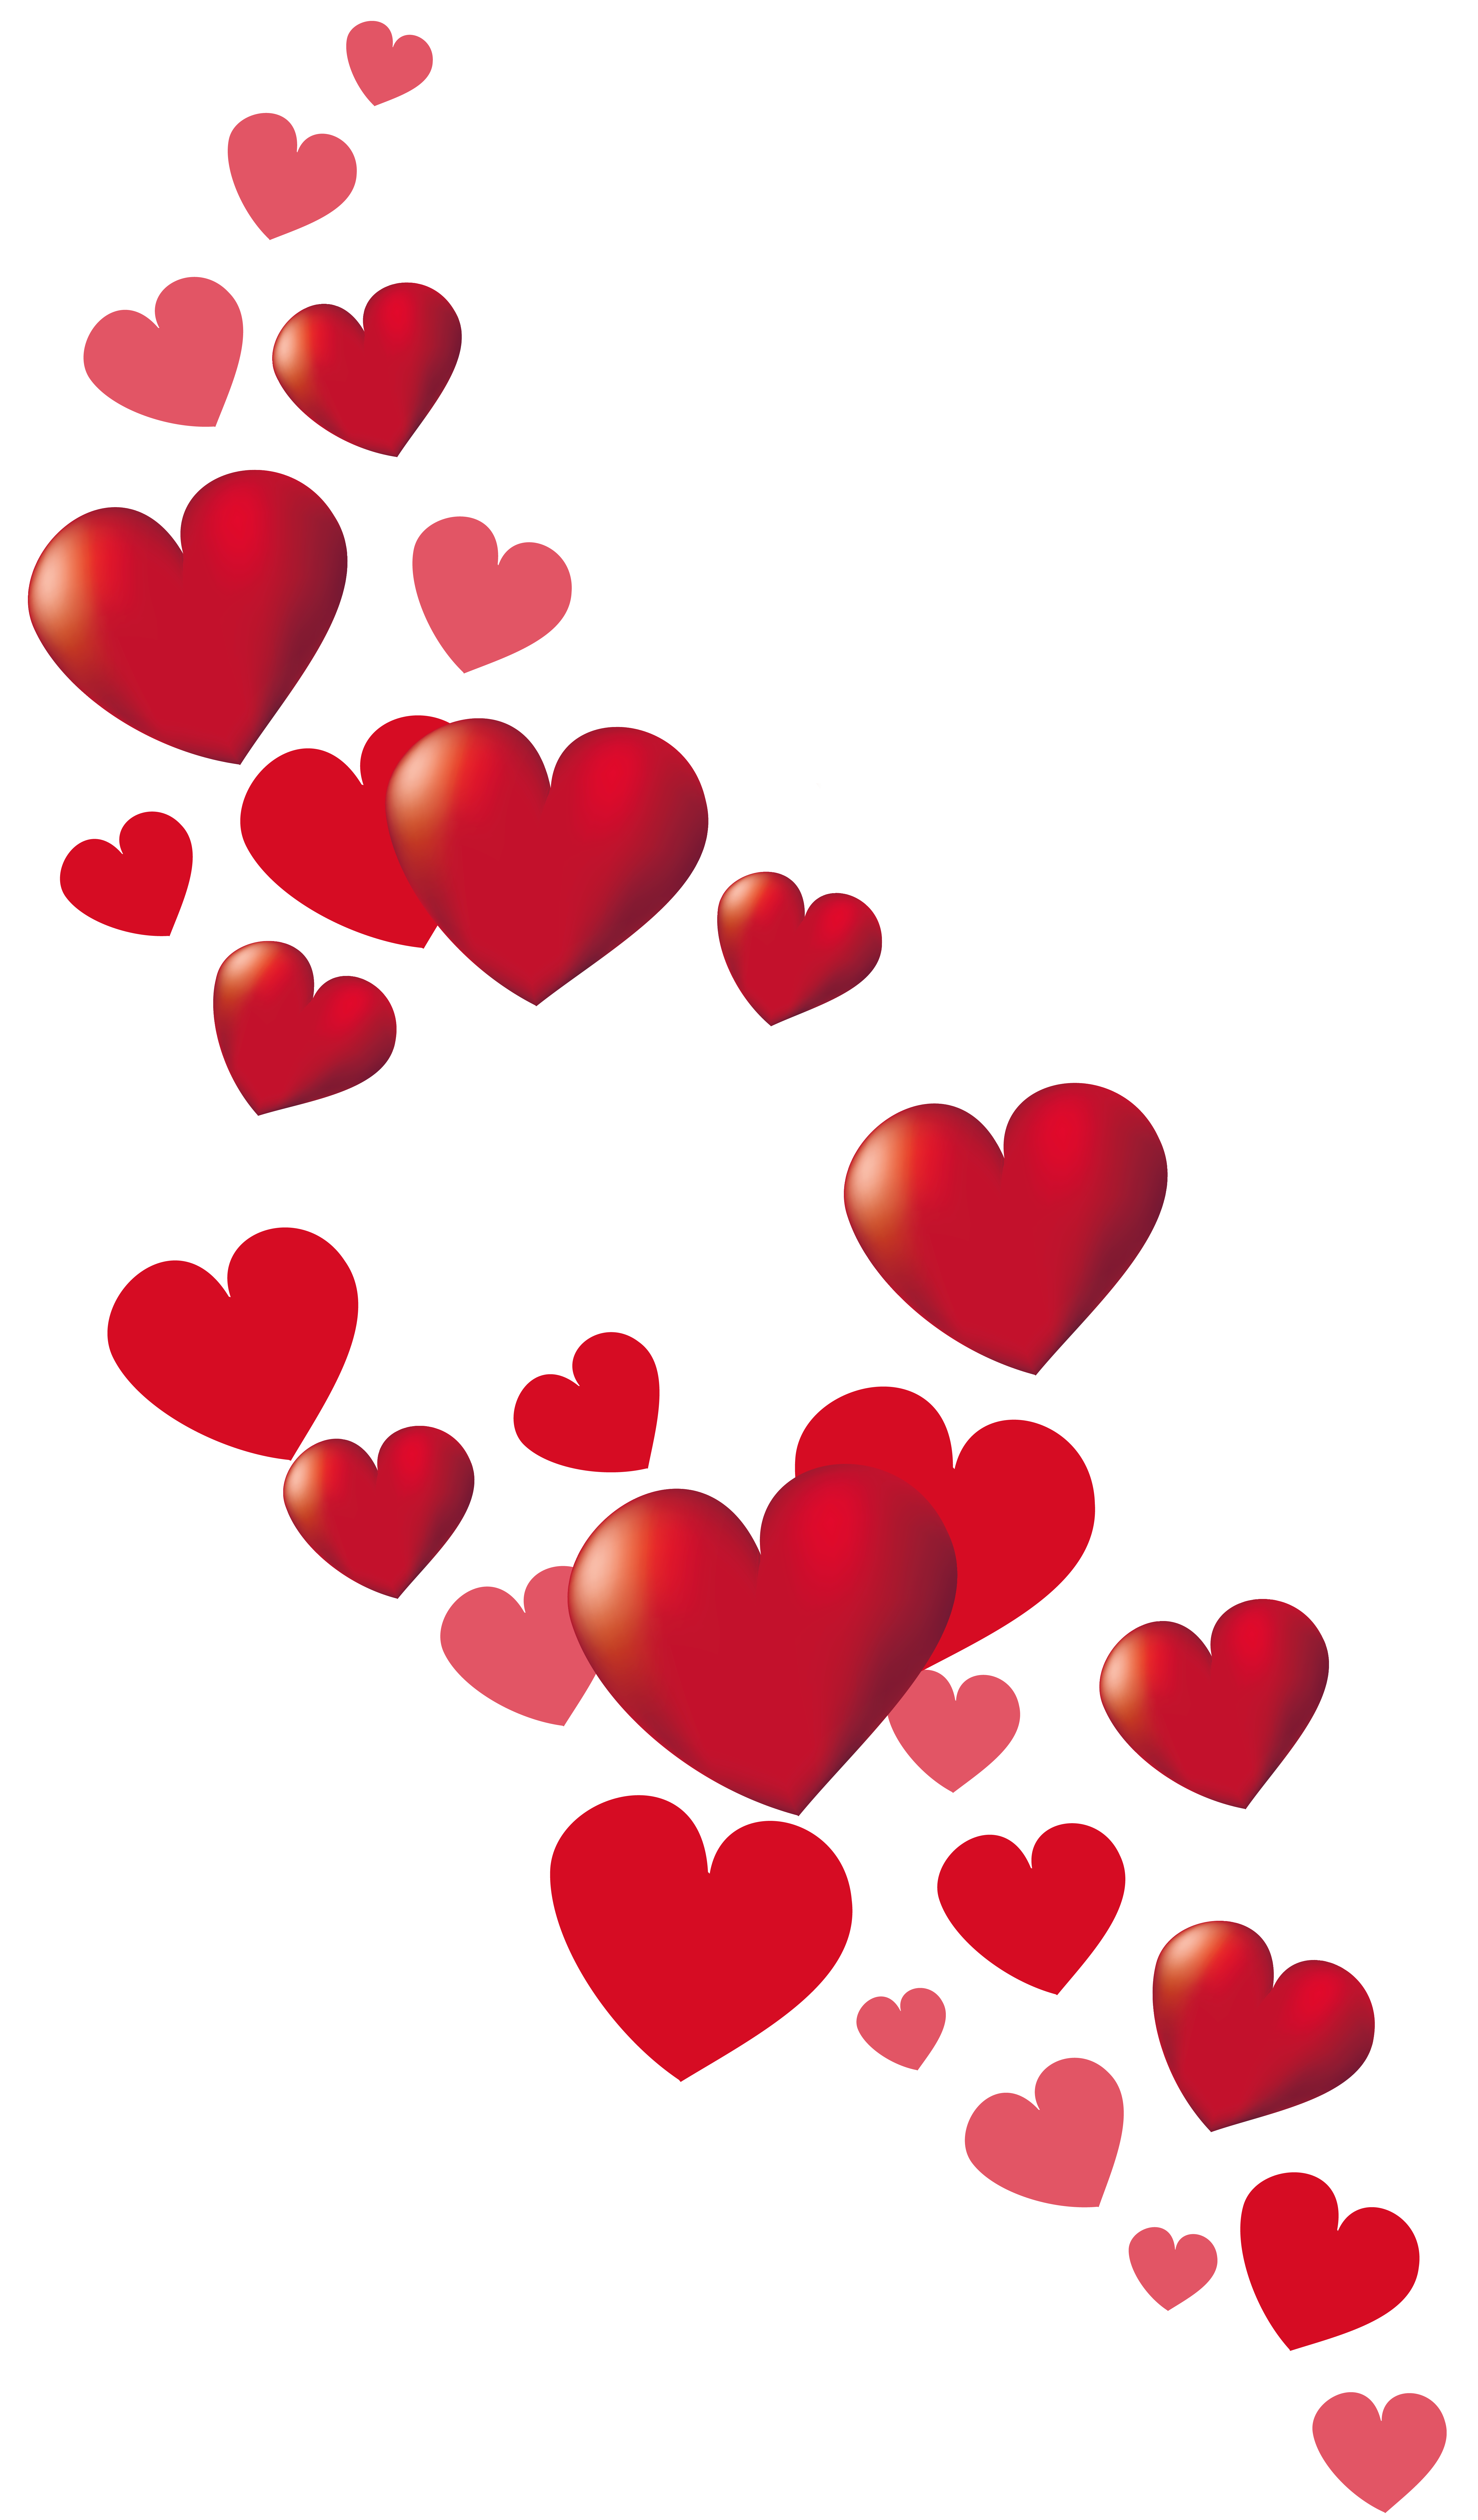 5088x8676 Valentine Hearts Decor Png Clipart Pictureu200b Gallery Yopriceville